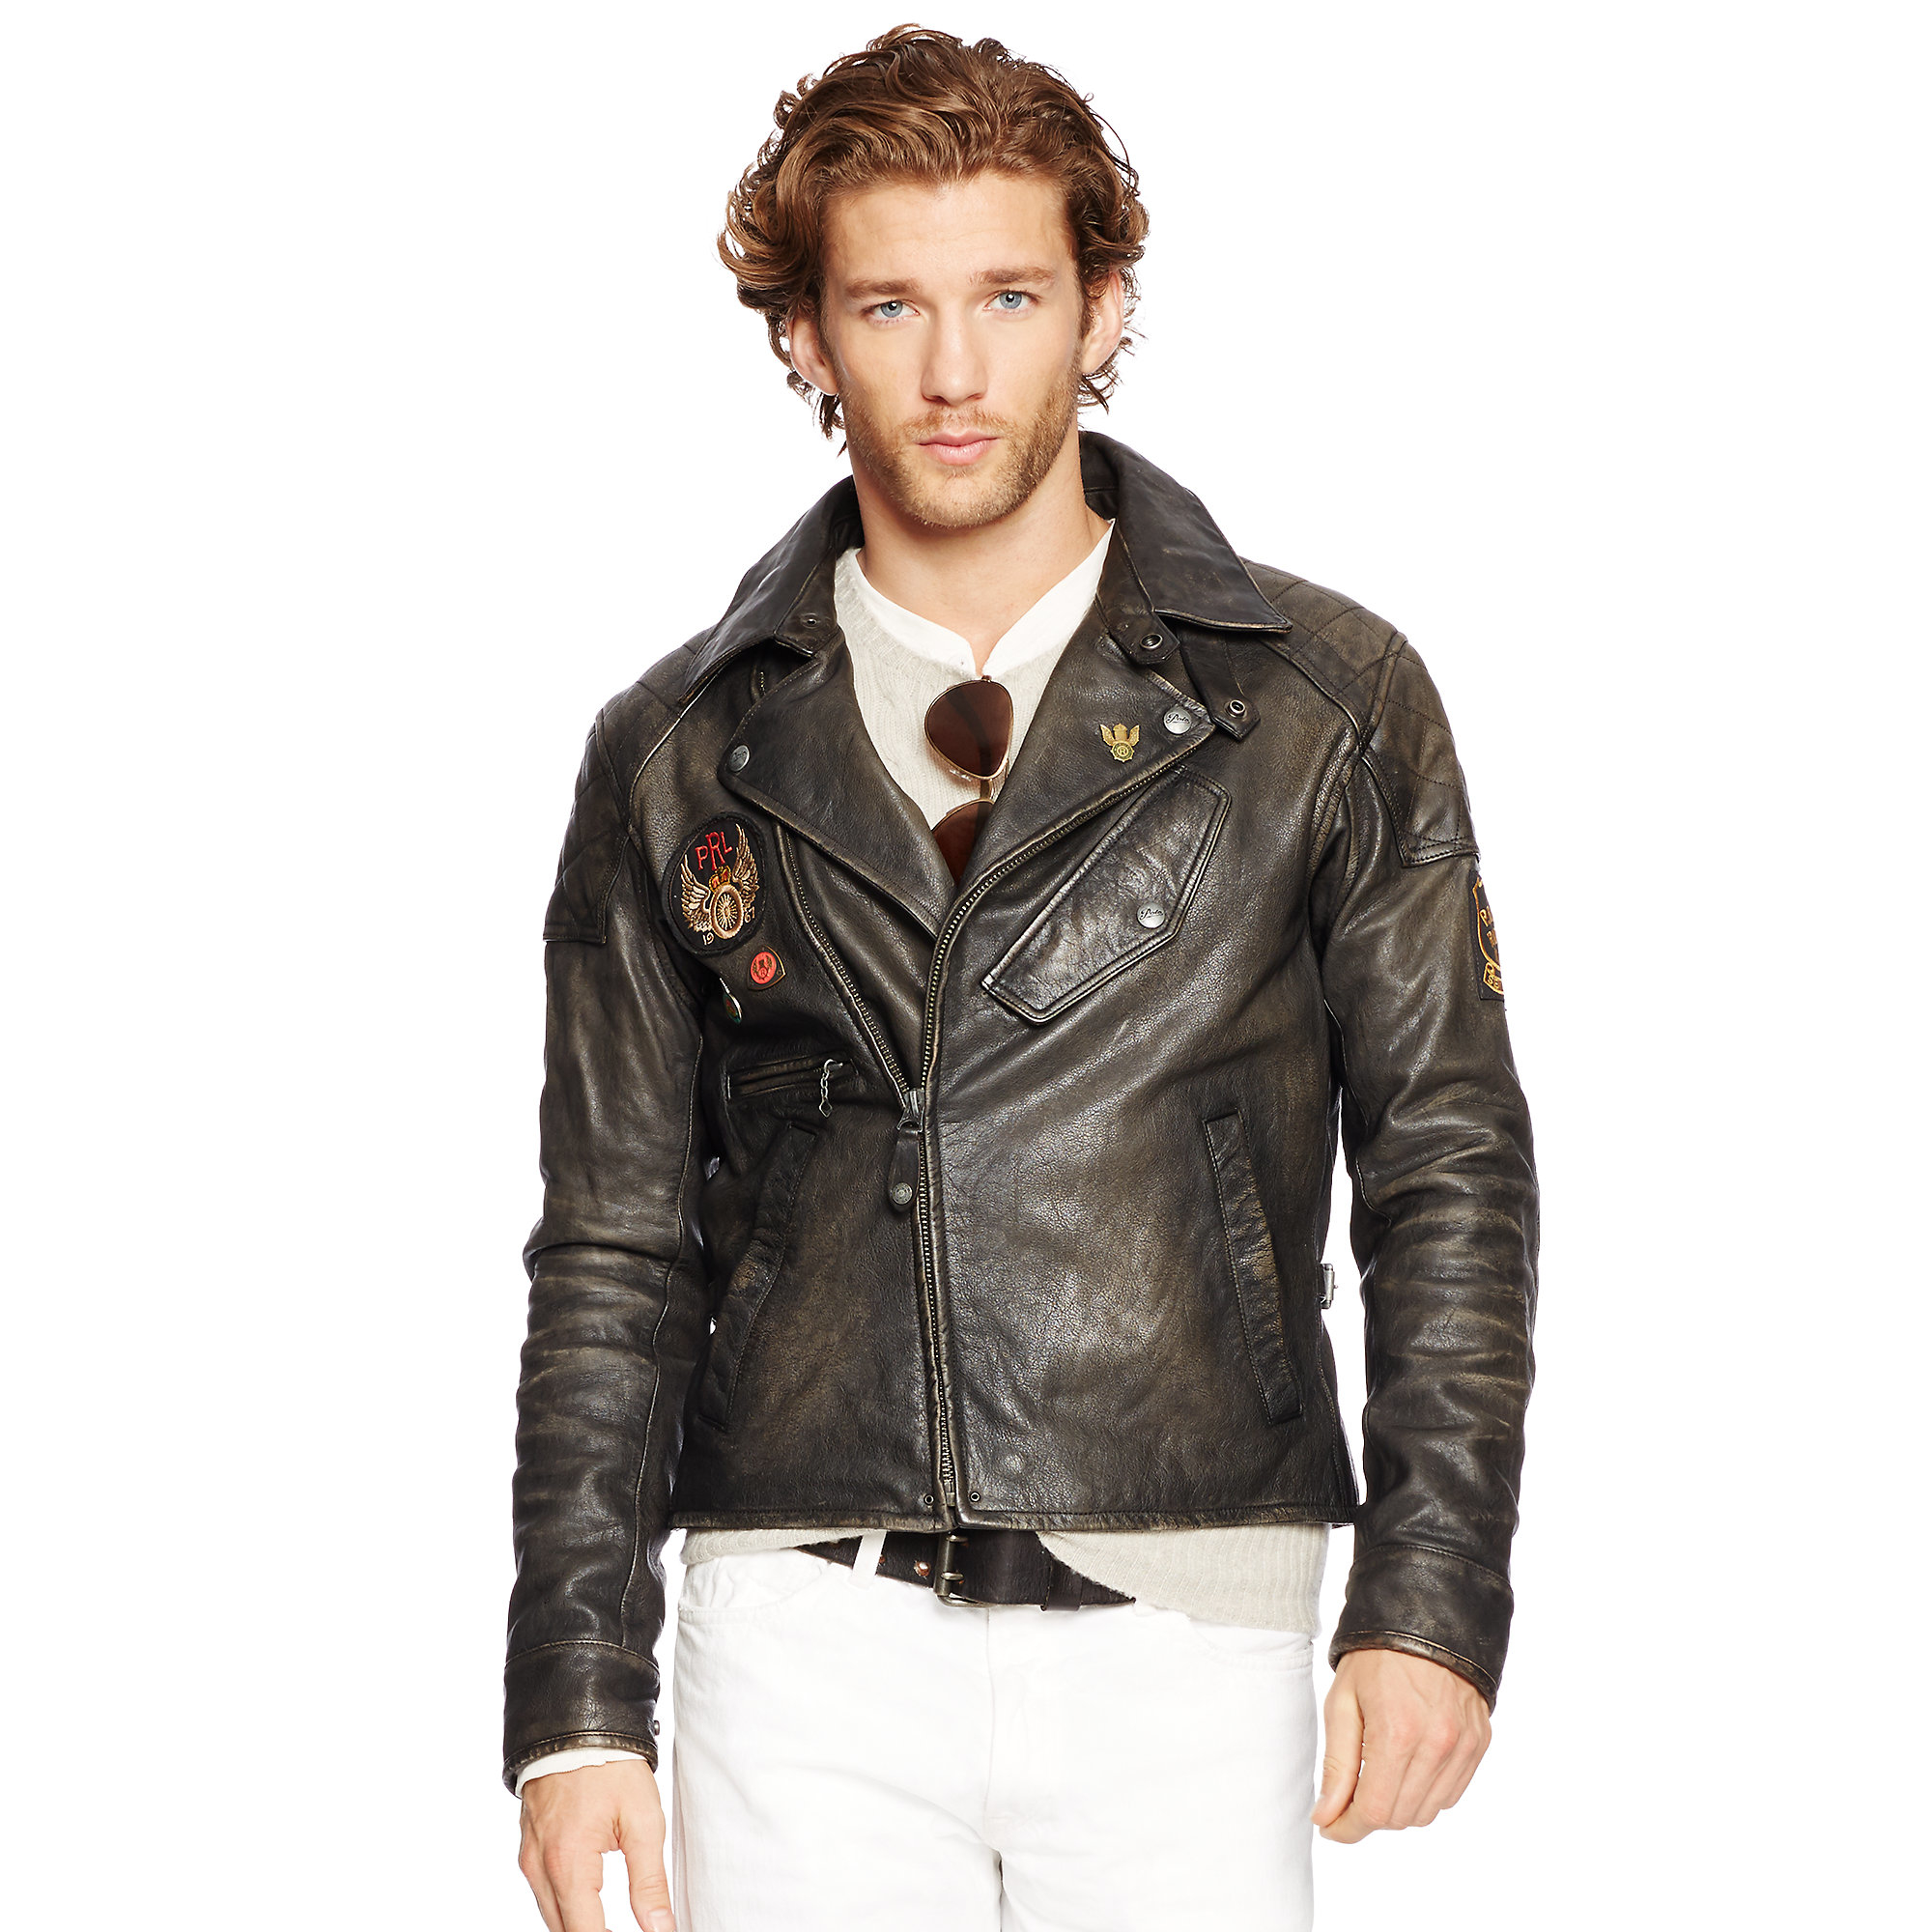 Leather polo jackets